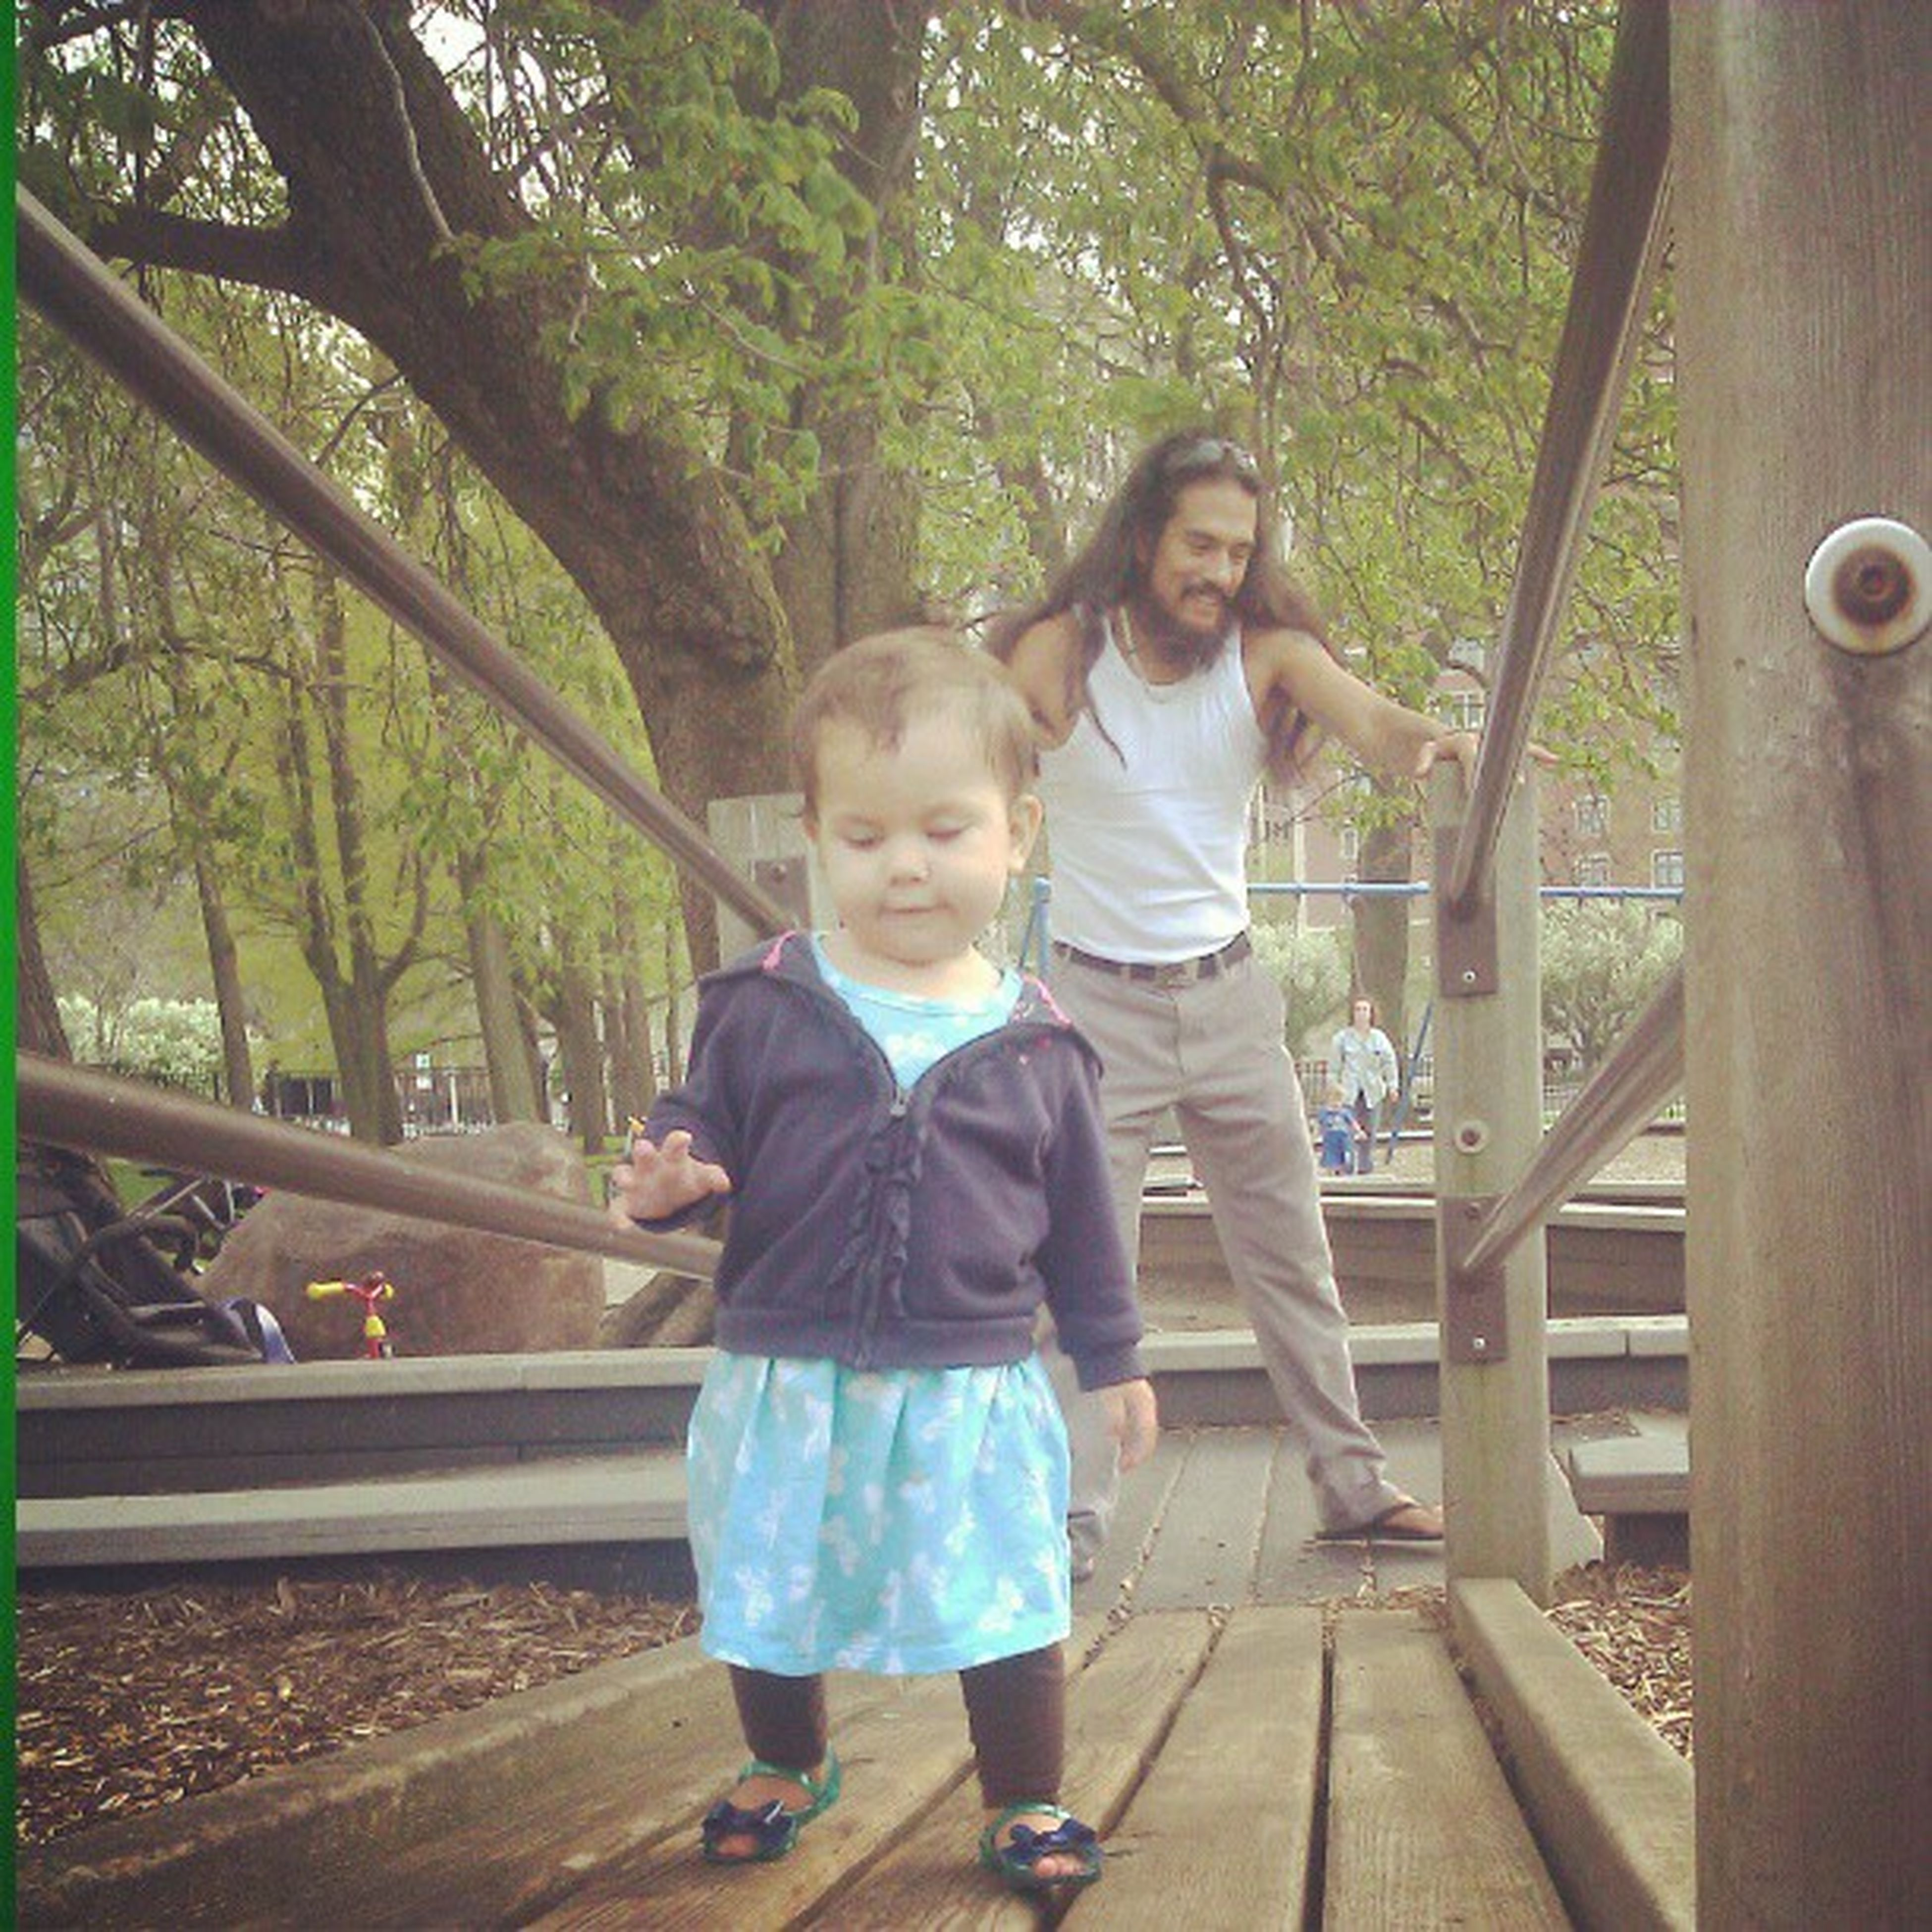 person, casual clothing, lifestyles, childhood, tree, full length, elementary age, leisure activity, boys, girls, wood - material, innocence, smiling, railing, looking at camera, front view, standing, park - man made space